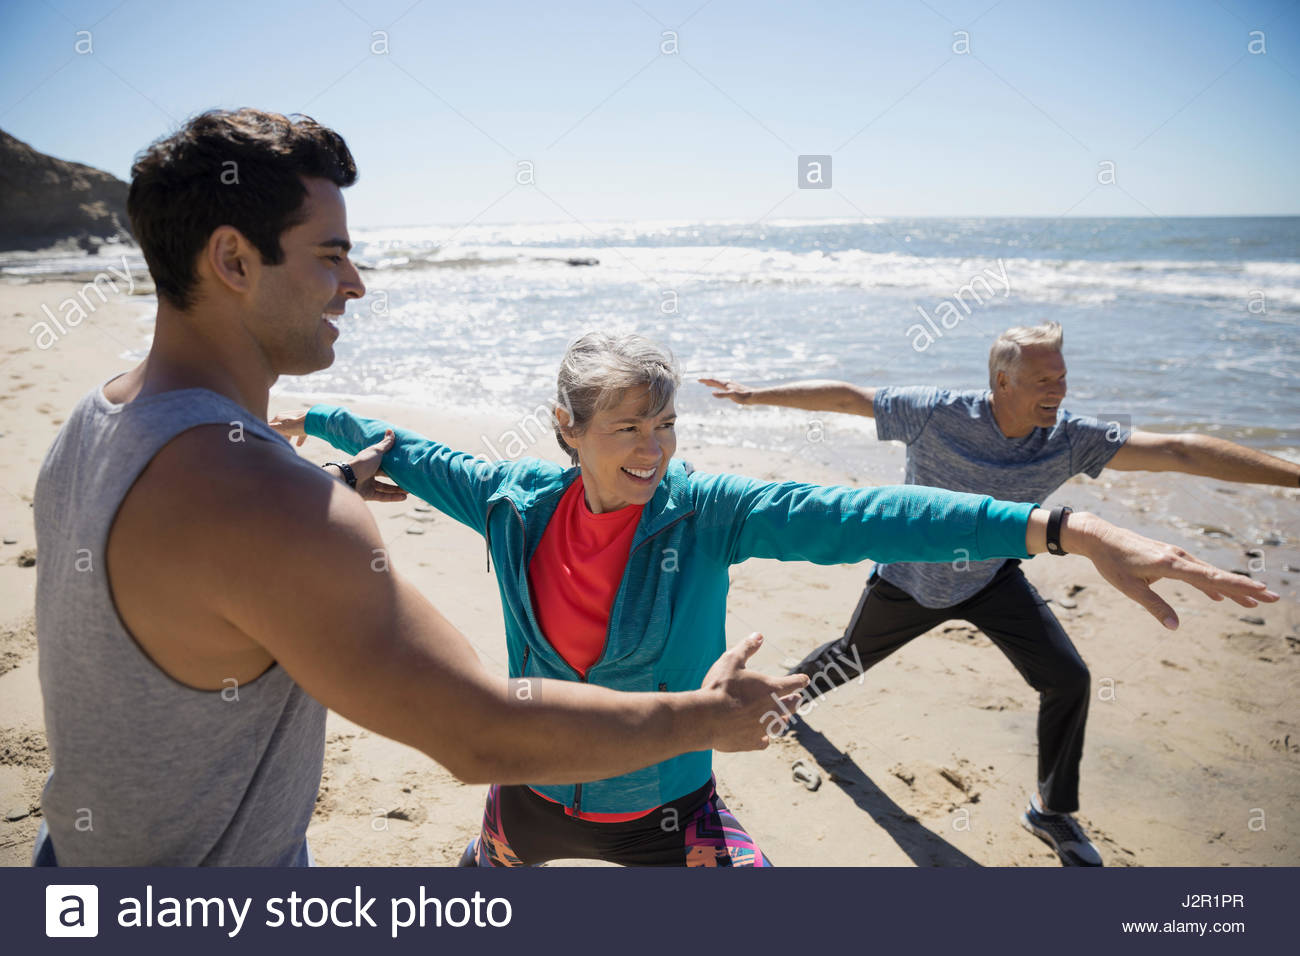 Crossfit trainer helping senior couple exercising, practicing yoga warrior 2 pose on sunny beach - Stock-Bilder